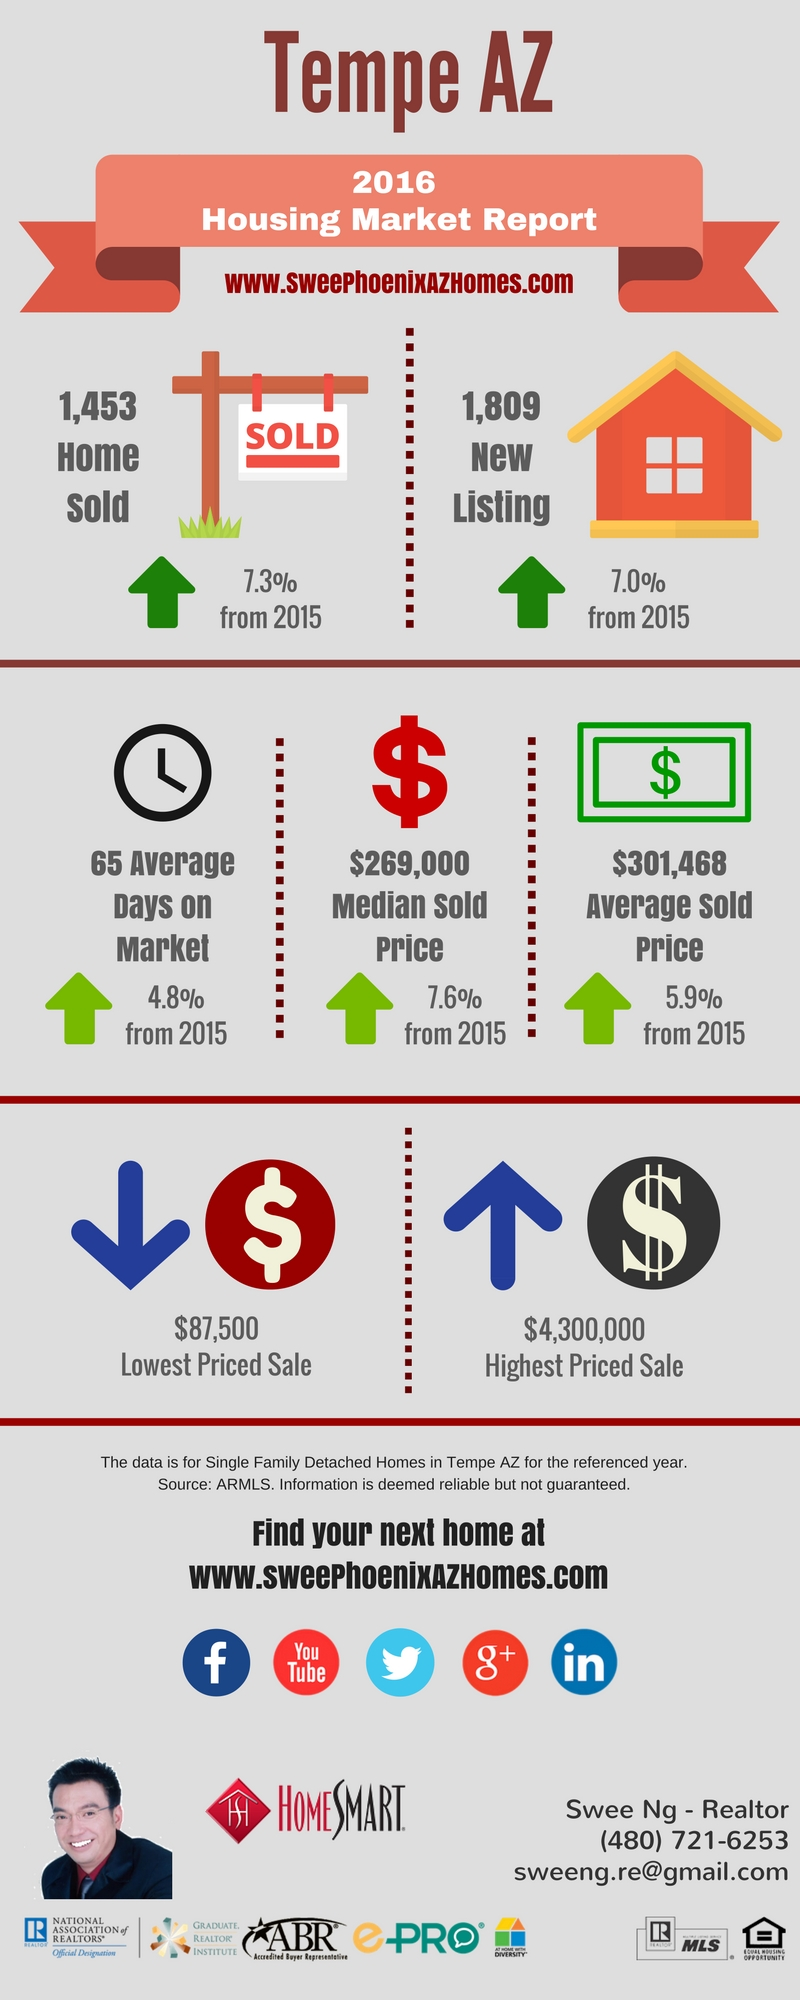 2016 Tempe AZ Housing Market Trends Report, Statistics and Home Price by Swee Ng